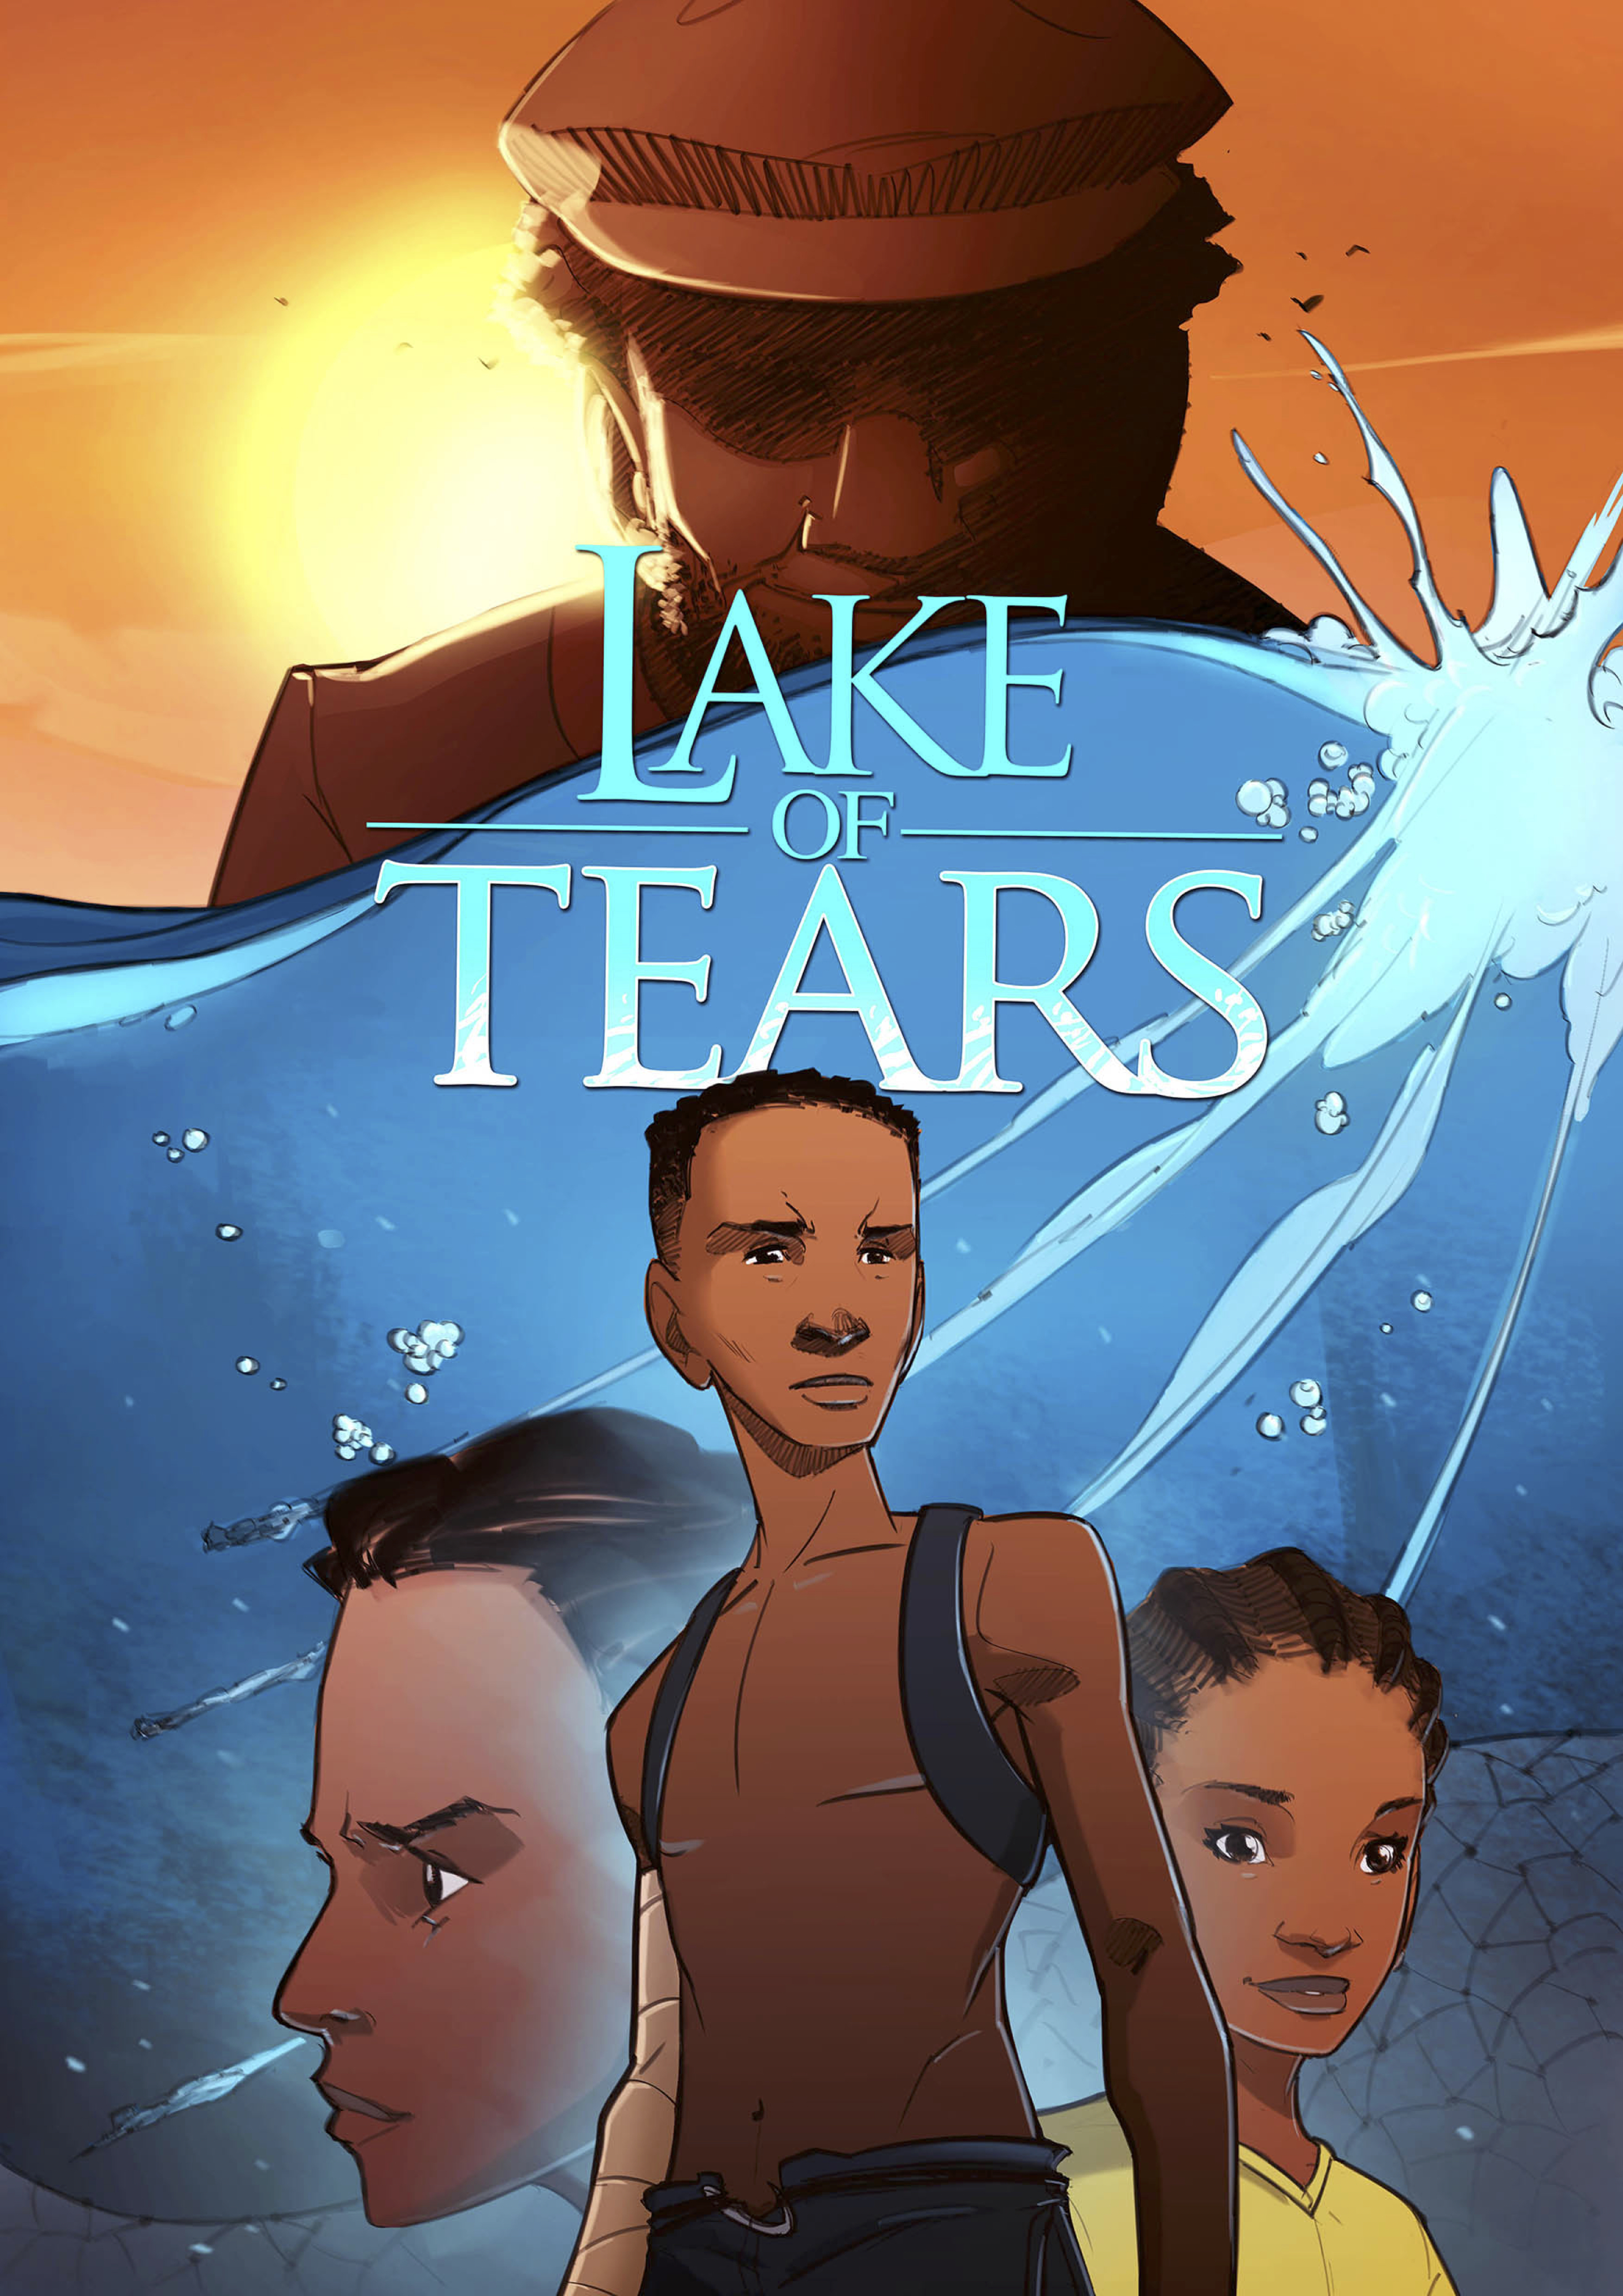 Lake of Tears: The Graphic Novel Exploring Child Trafficking On The Volta Lake